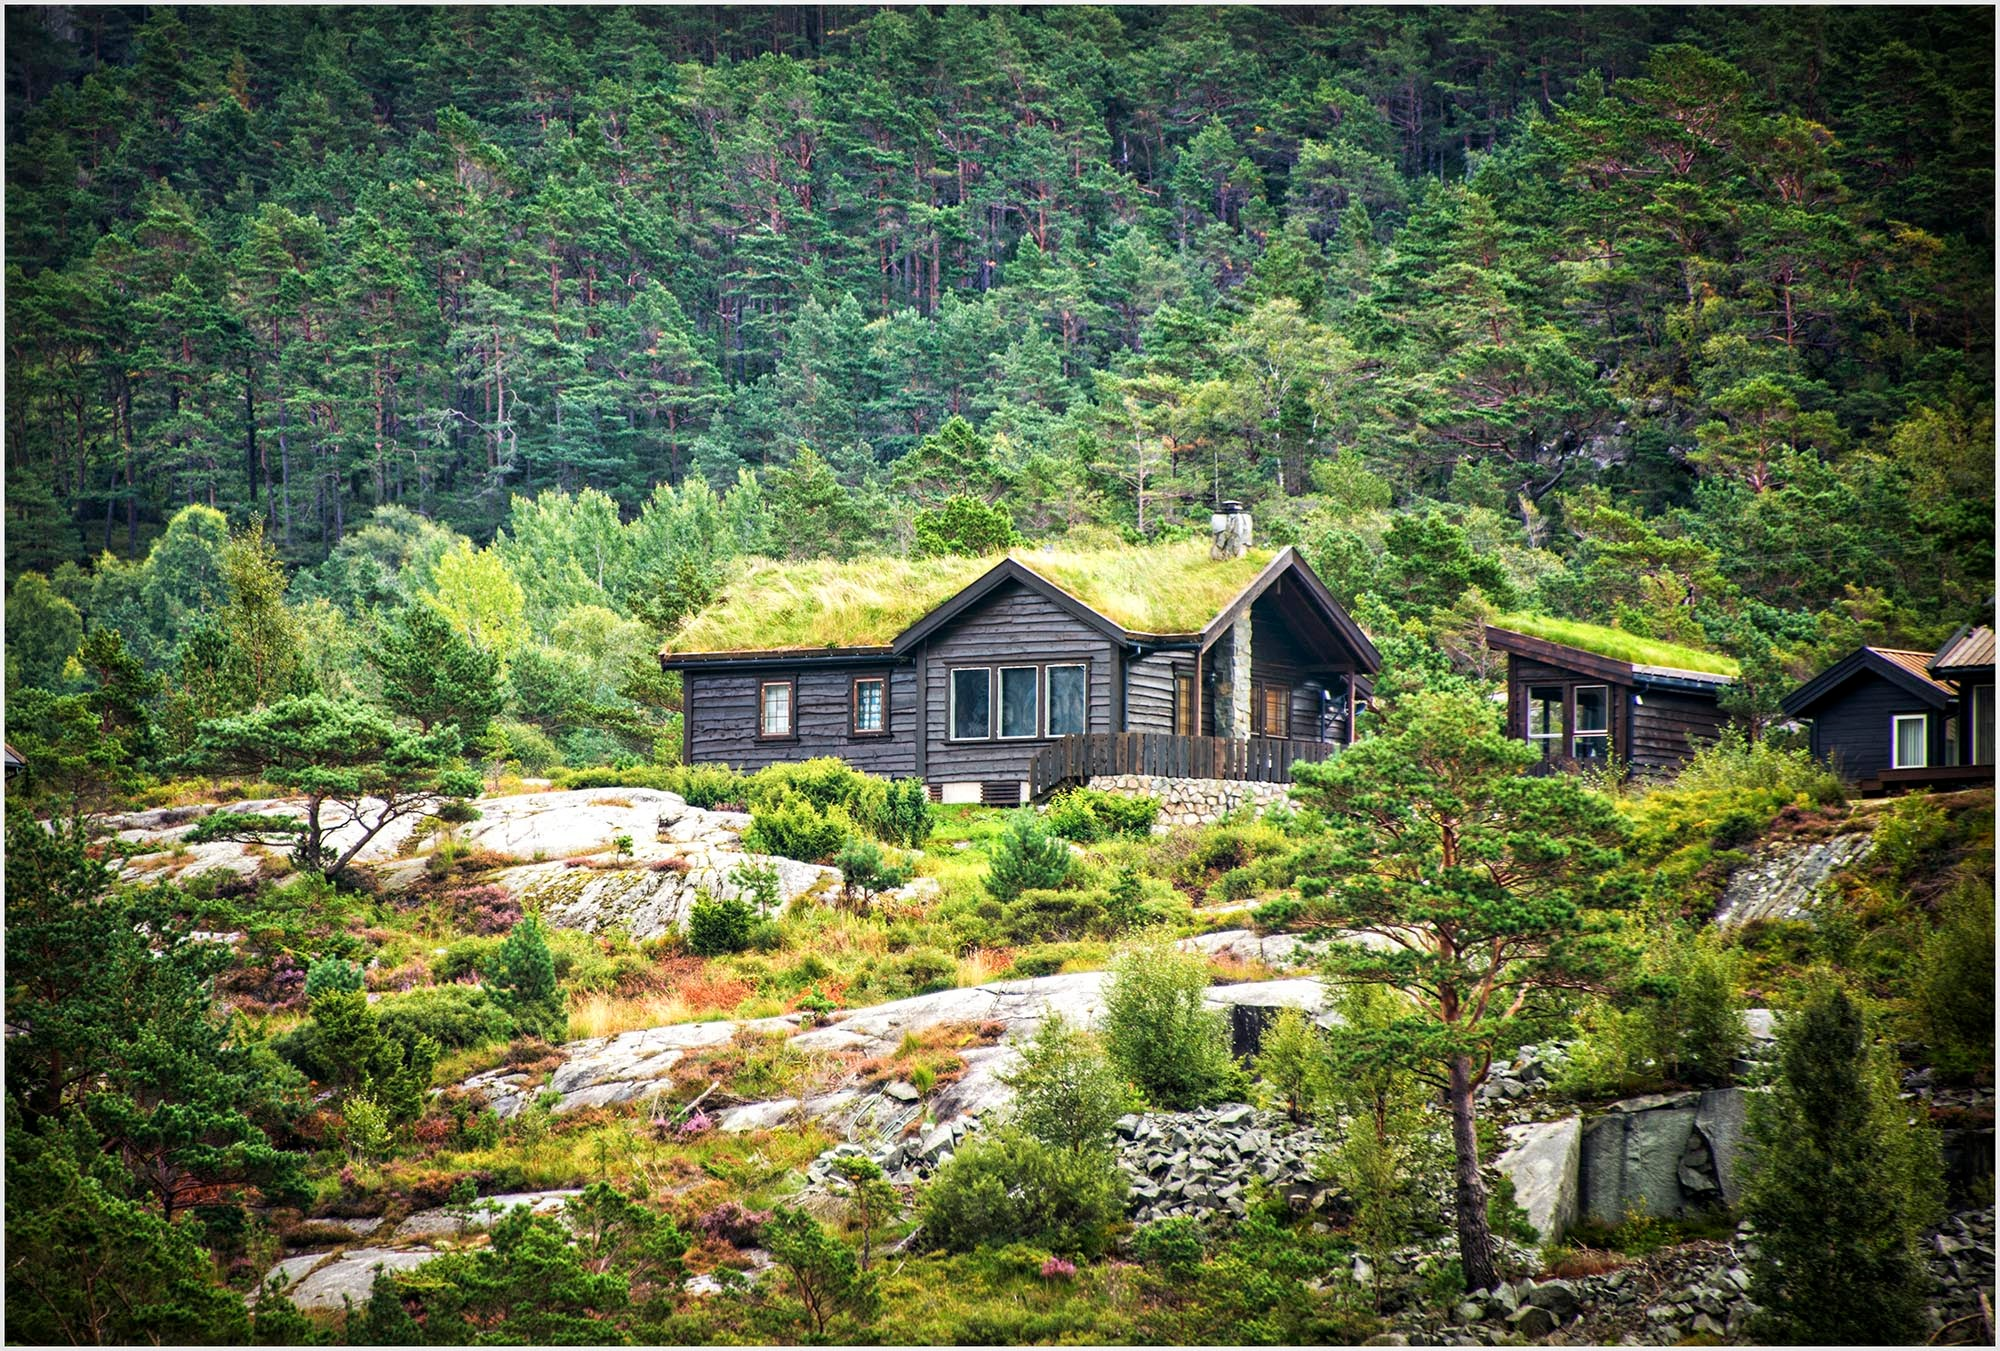 Grass Roofed House - Stavenger, Norway by tedurquhart1